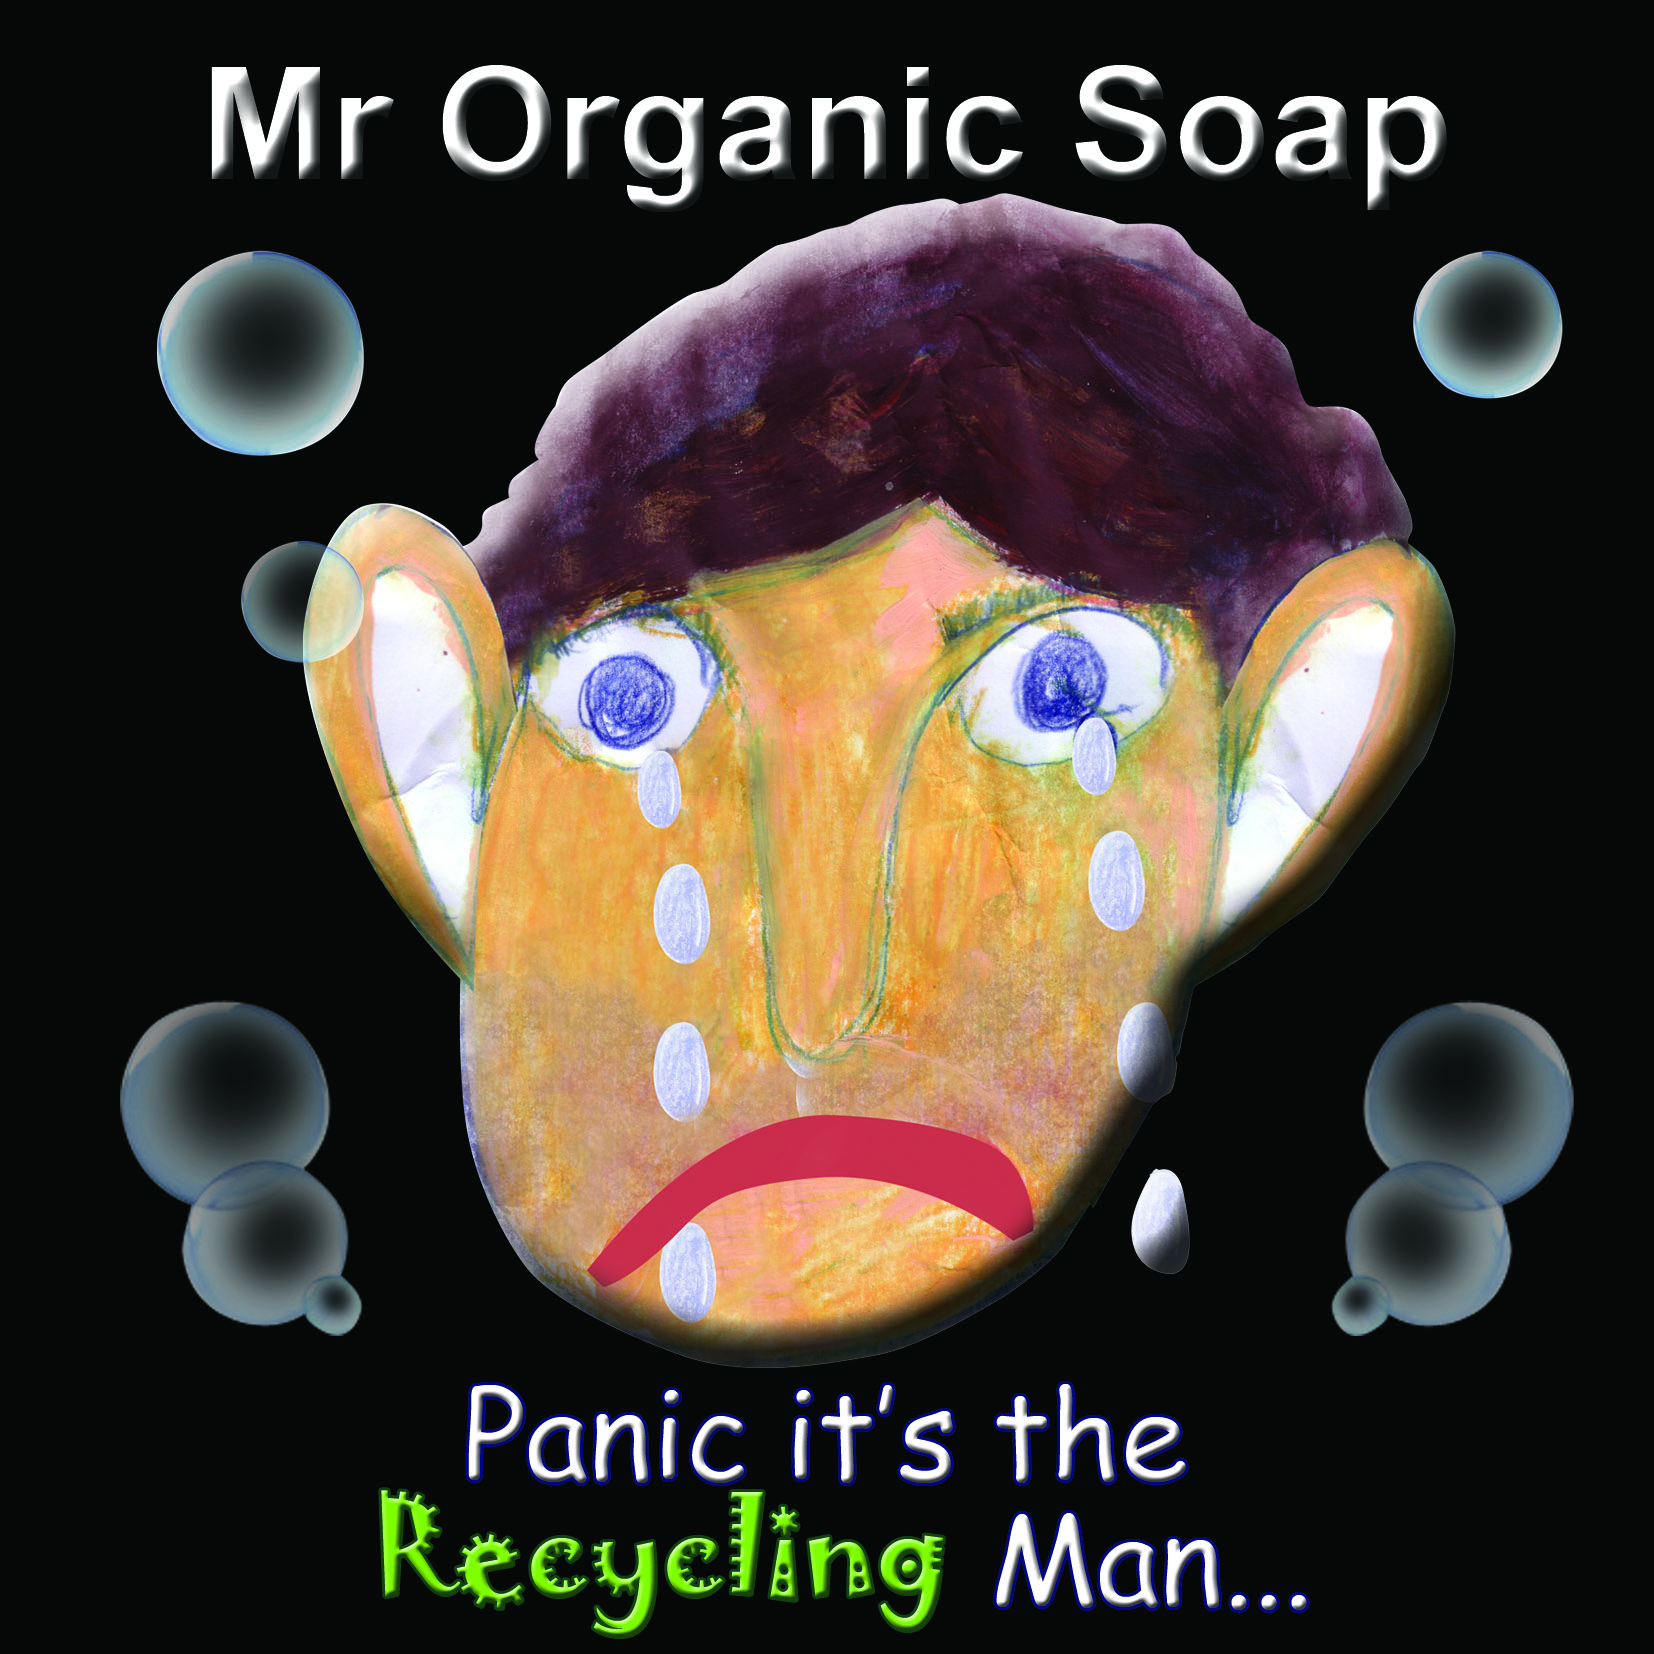 3086 || 1544 || Mr Organic Soap || If you intend to put this work up for sale || 2346